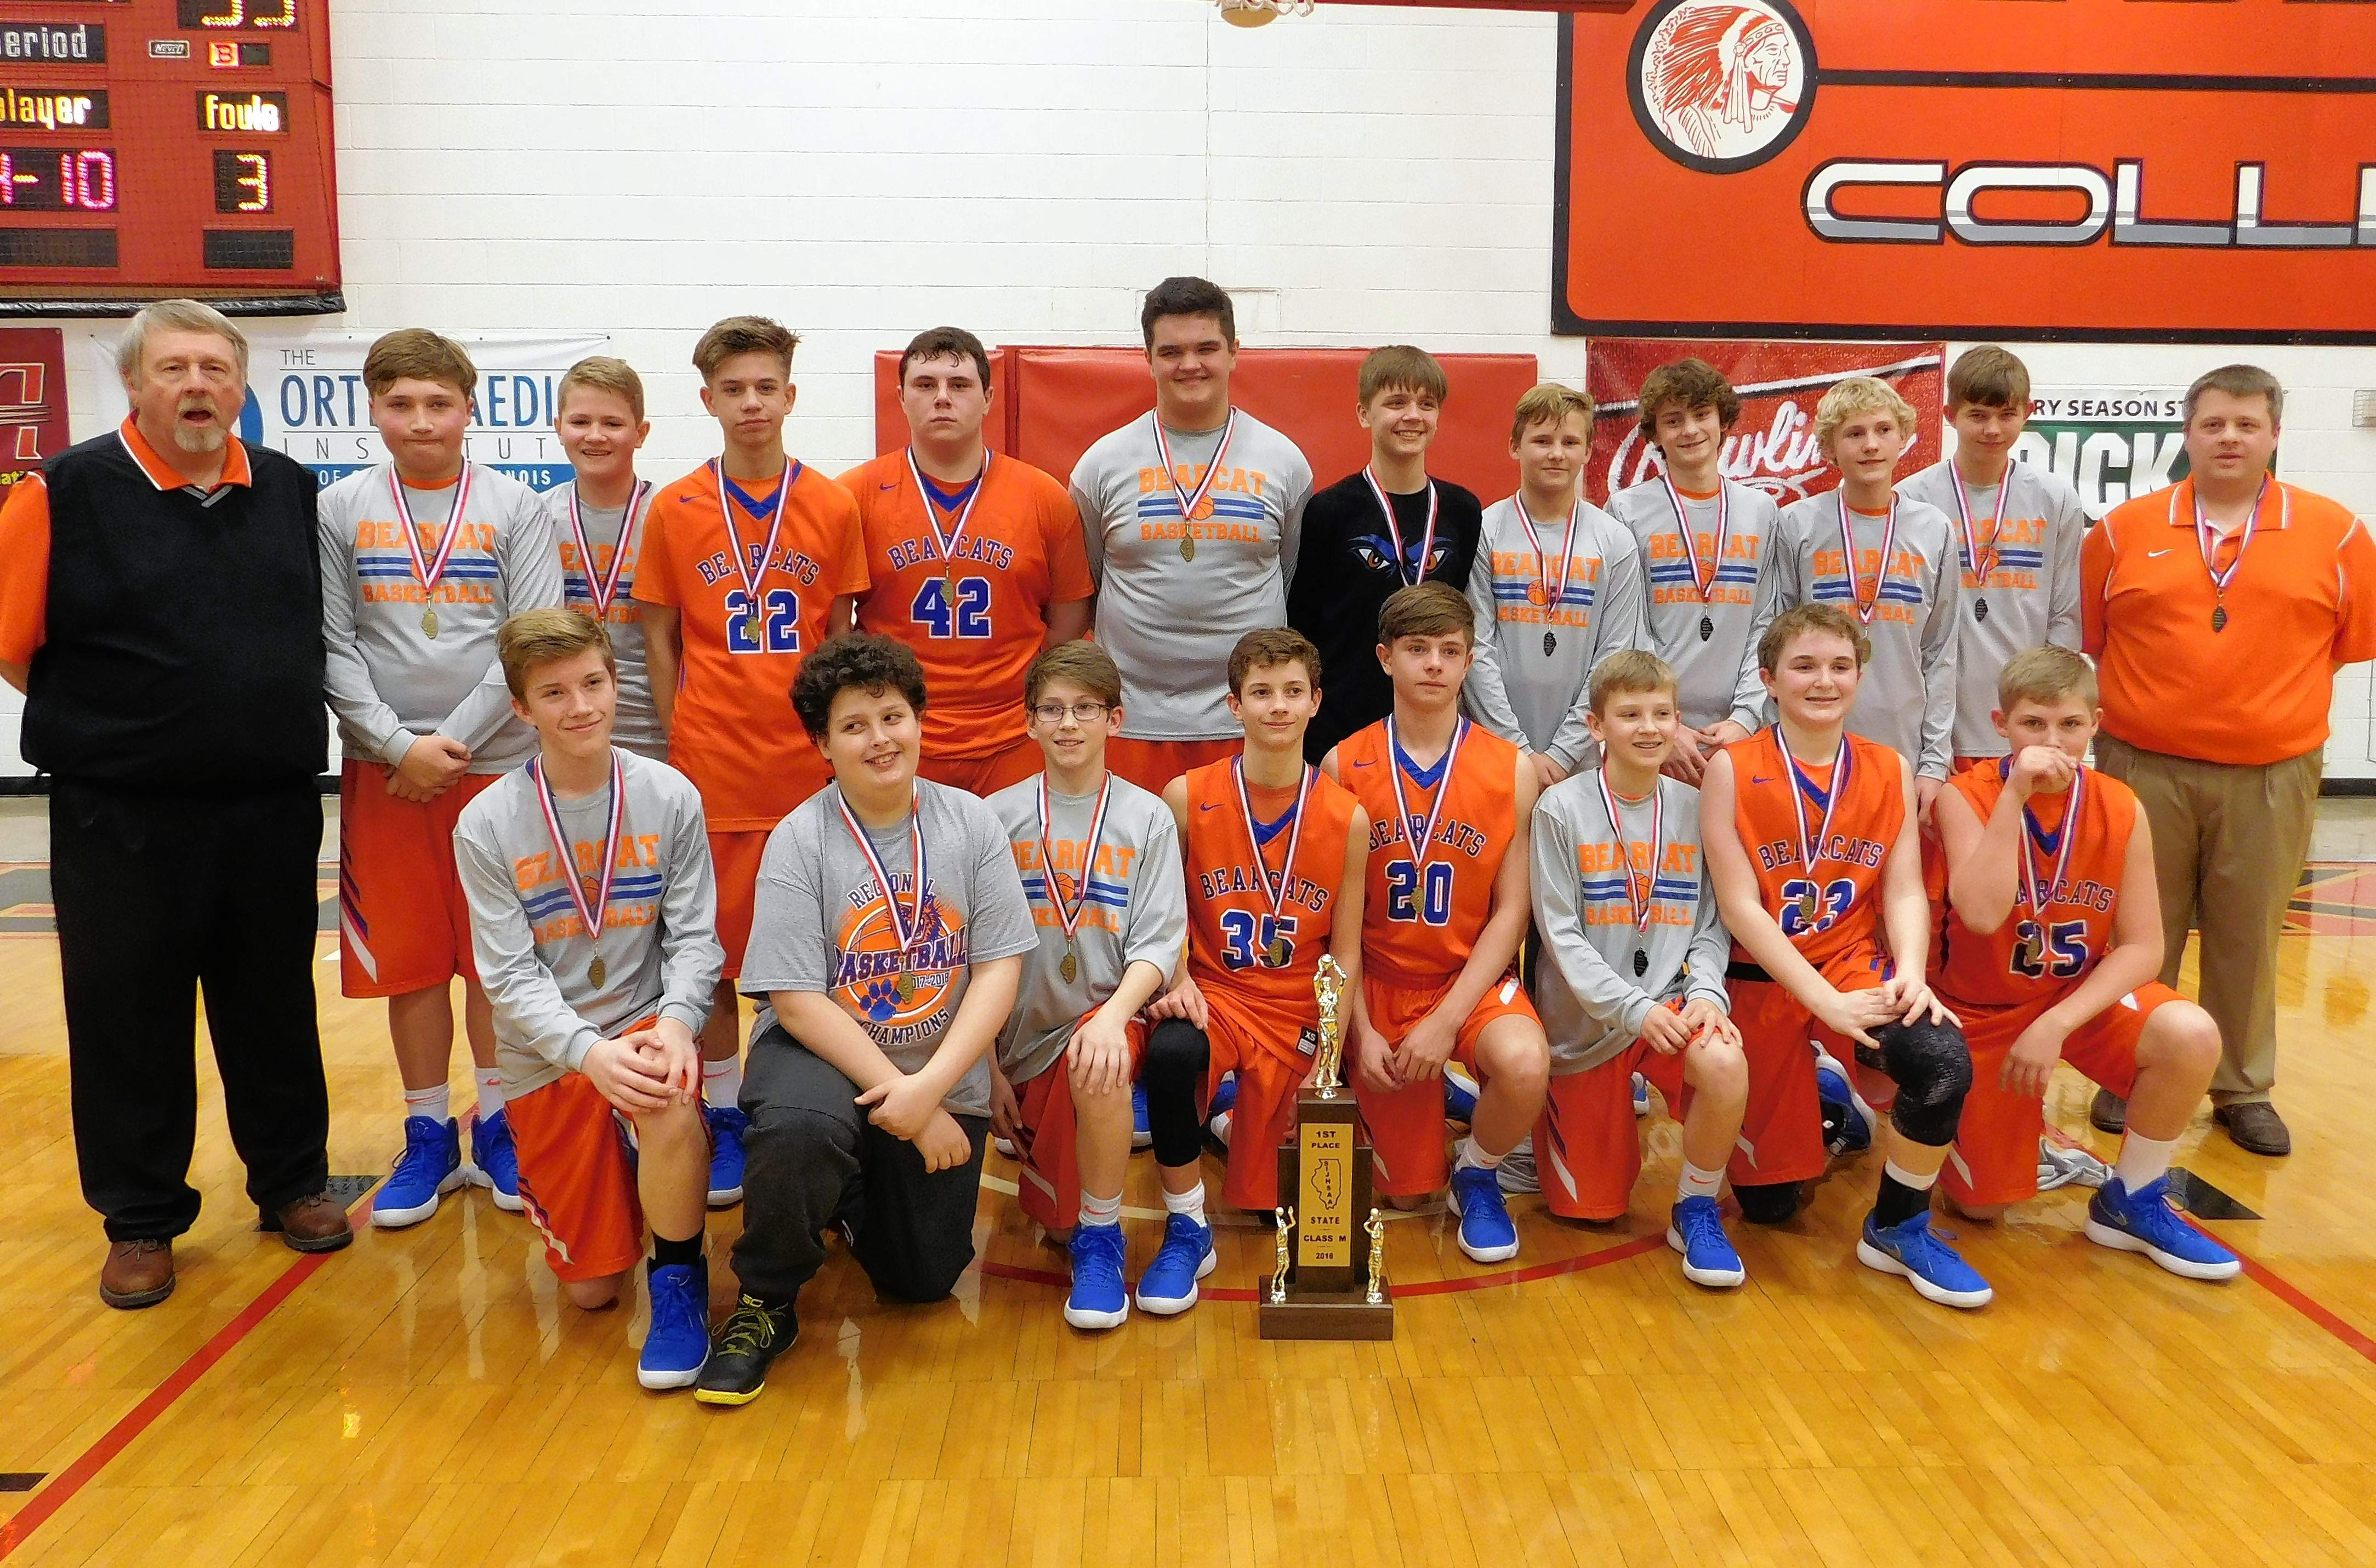 The Christopher Middle School Bearcats finished their season with a win and the first-place trophy at the IJHSAA state tournament held last week at Rend Lake College. The Bearcats finished the season with a 17-7 record. FOR THE FULL STORY, SEE PAGE 7.